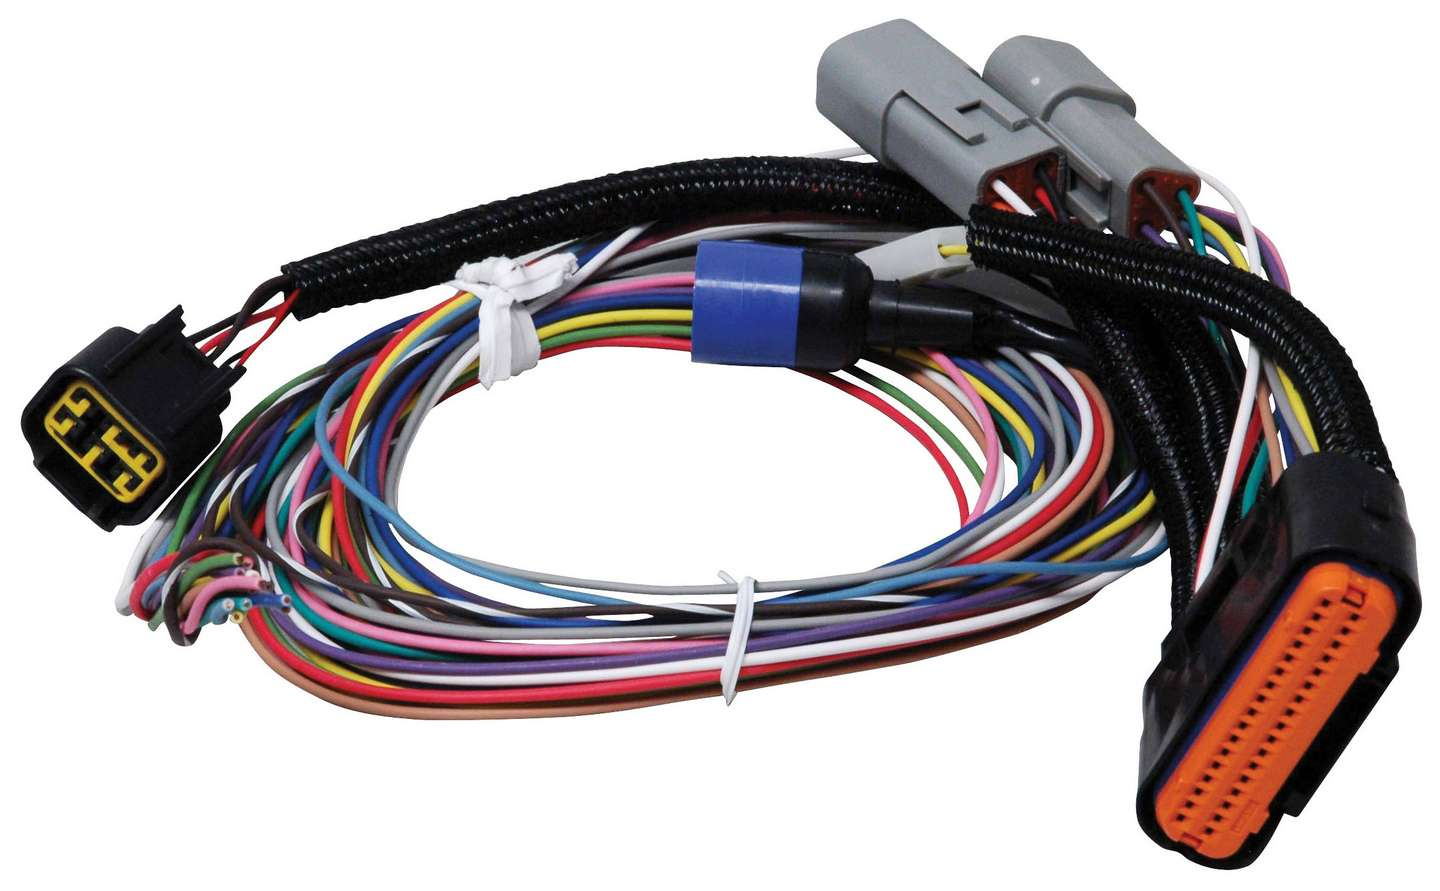 msd 7780 1 search results etheridge race parts Ford MSD Ignition Wiring Diagram at eliteediting.co